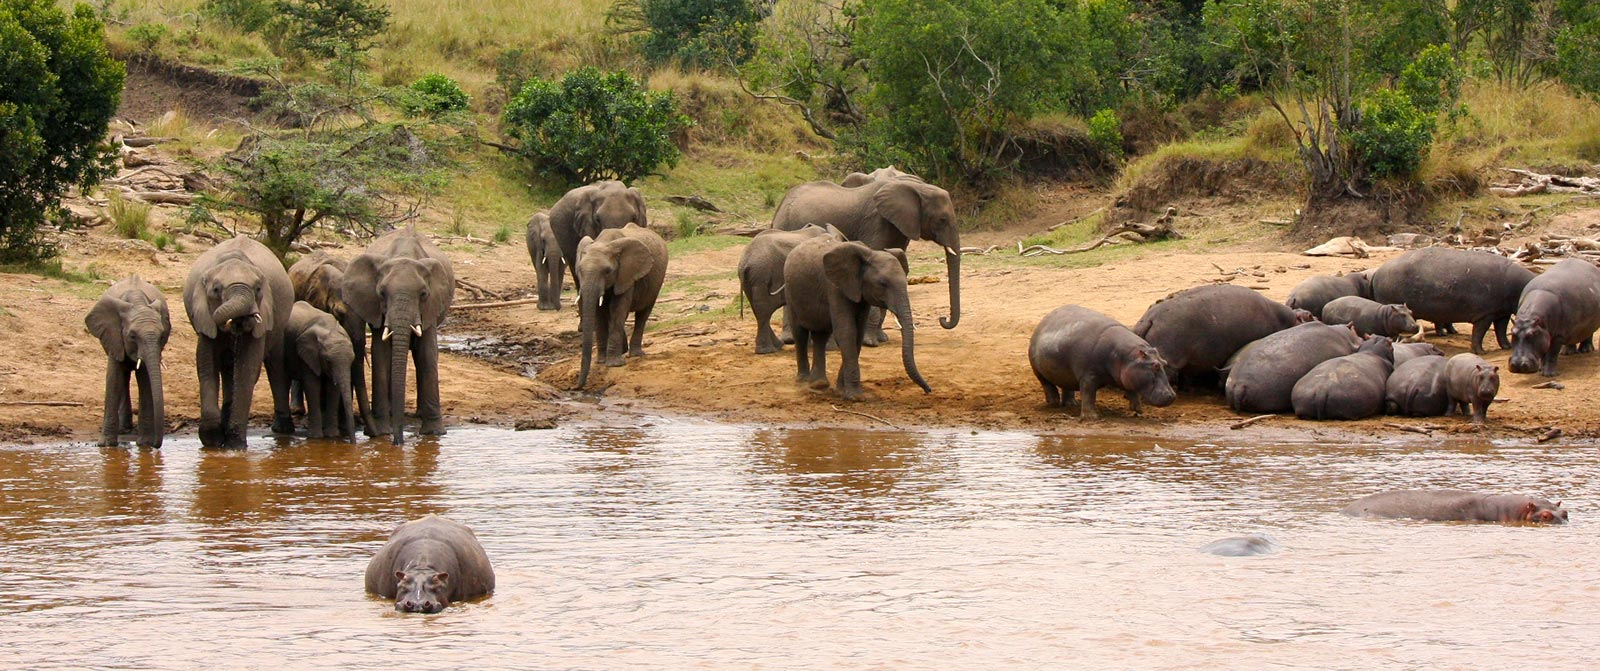 View of Wildlife from Karen Blixen Camp - Masai Mara National Reserve Kenya - Luxury Air Safari: Kenya Adventure Package